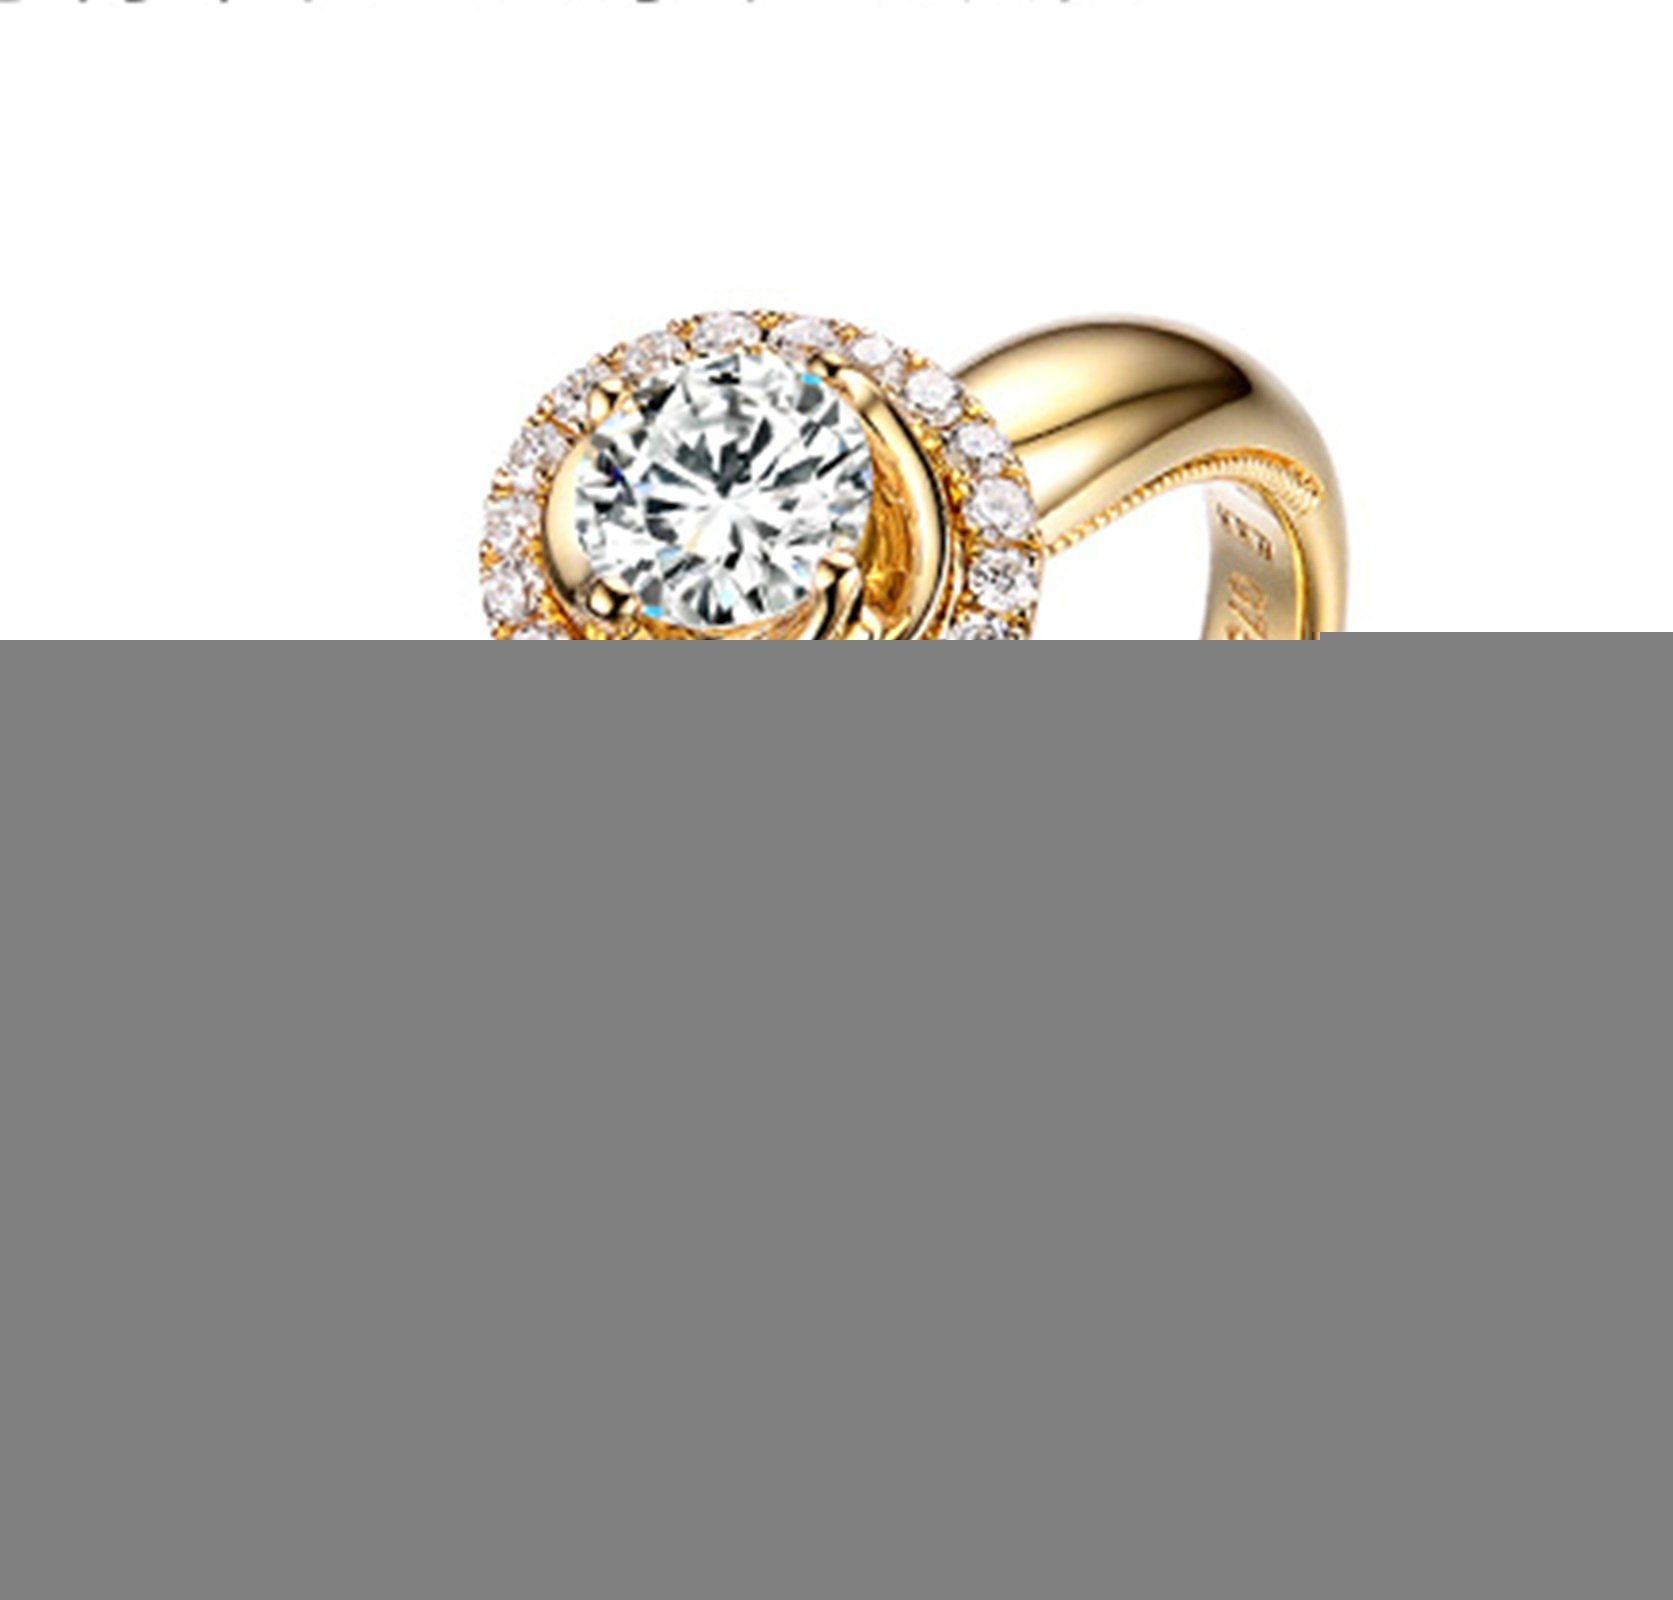 Gnzoe Rose Gold Women Wedding Rings Solitaire Promise Rings Crown Flowers Yellow with White Blue 0.5ct Diamond Size 5 by Gnzoe